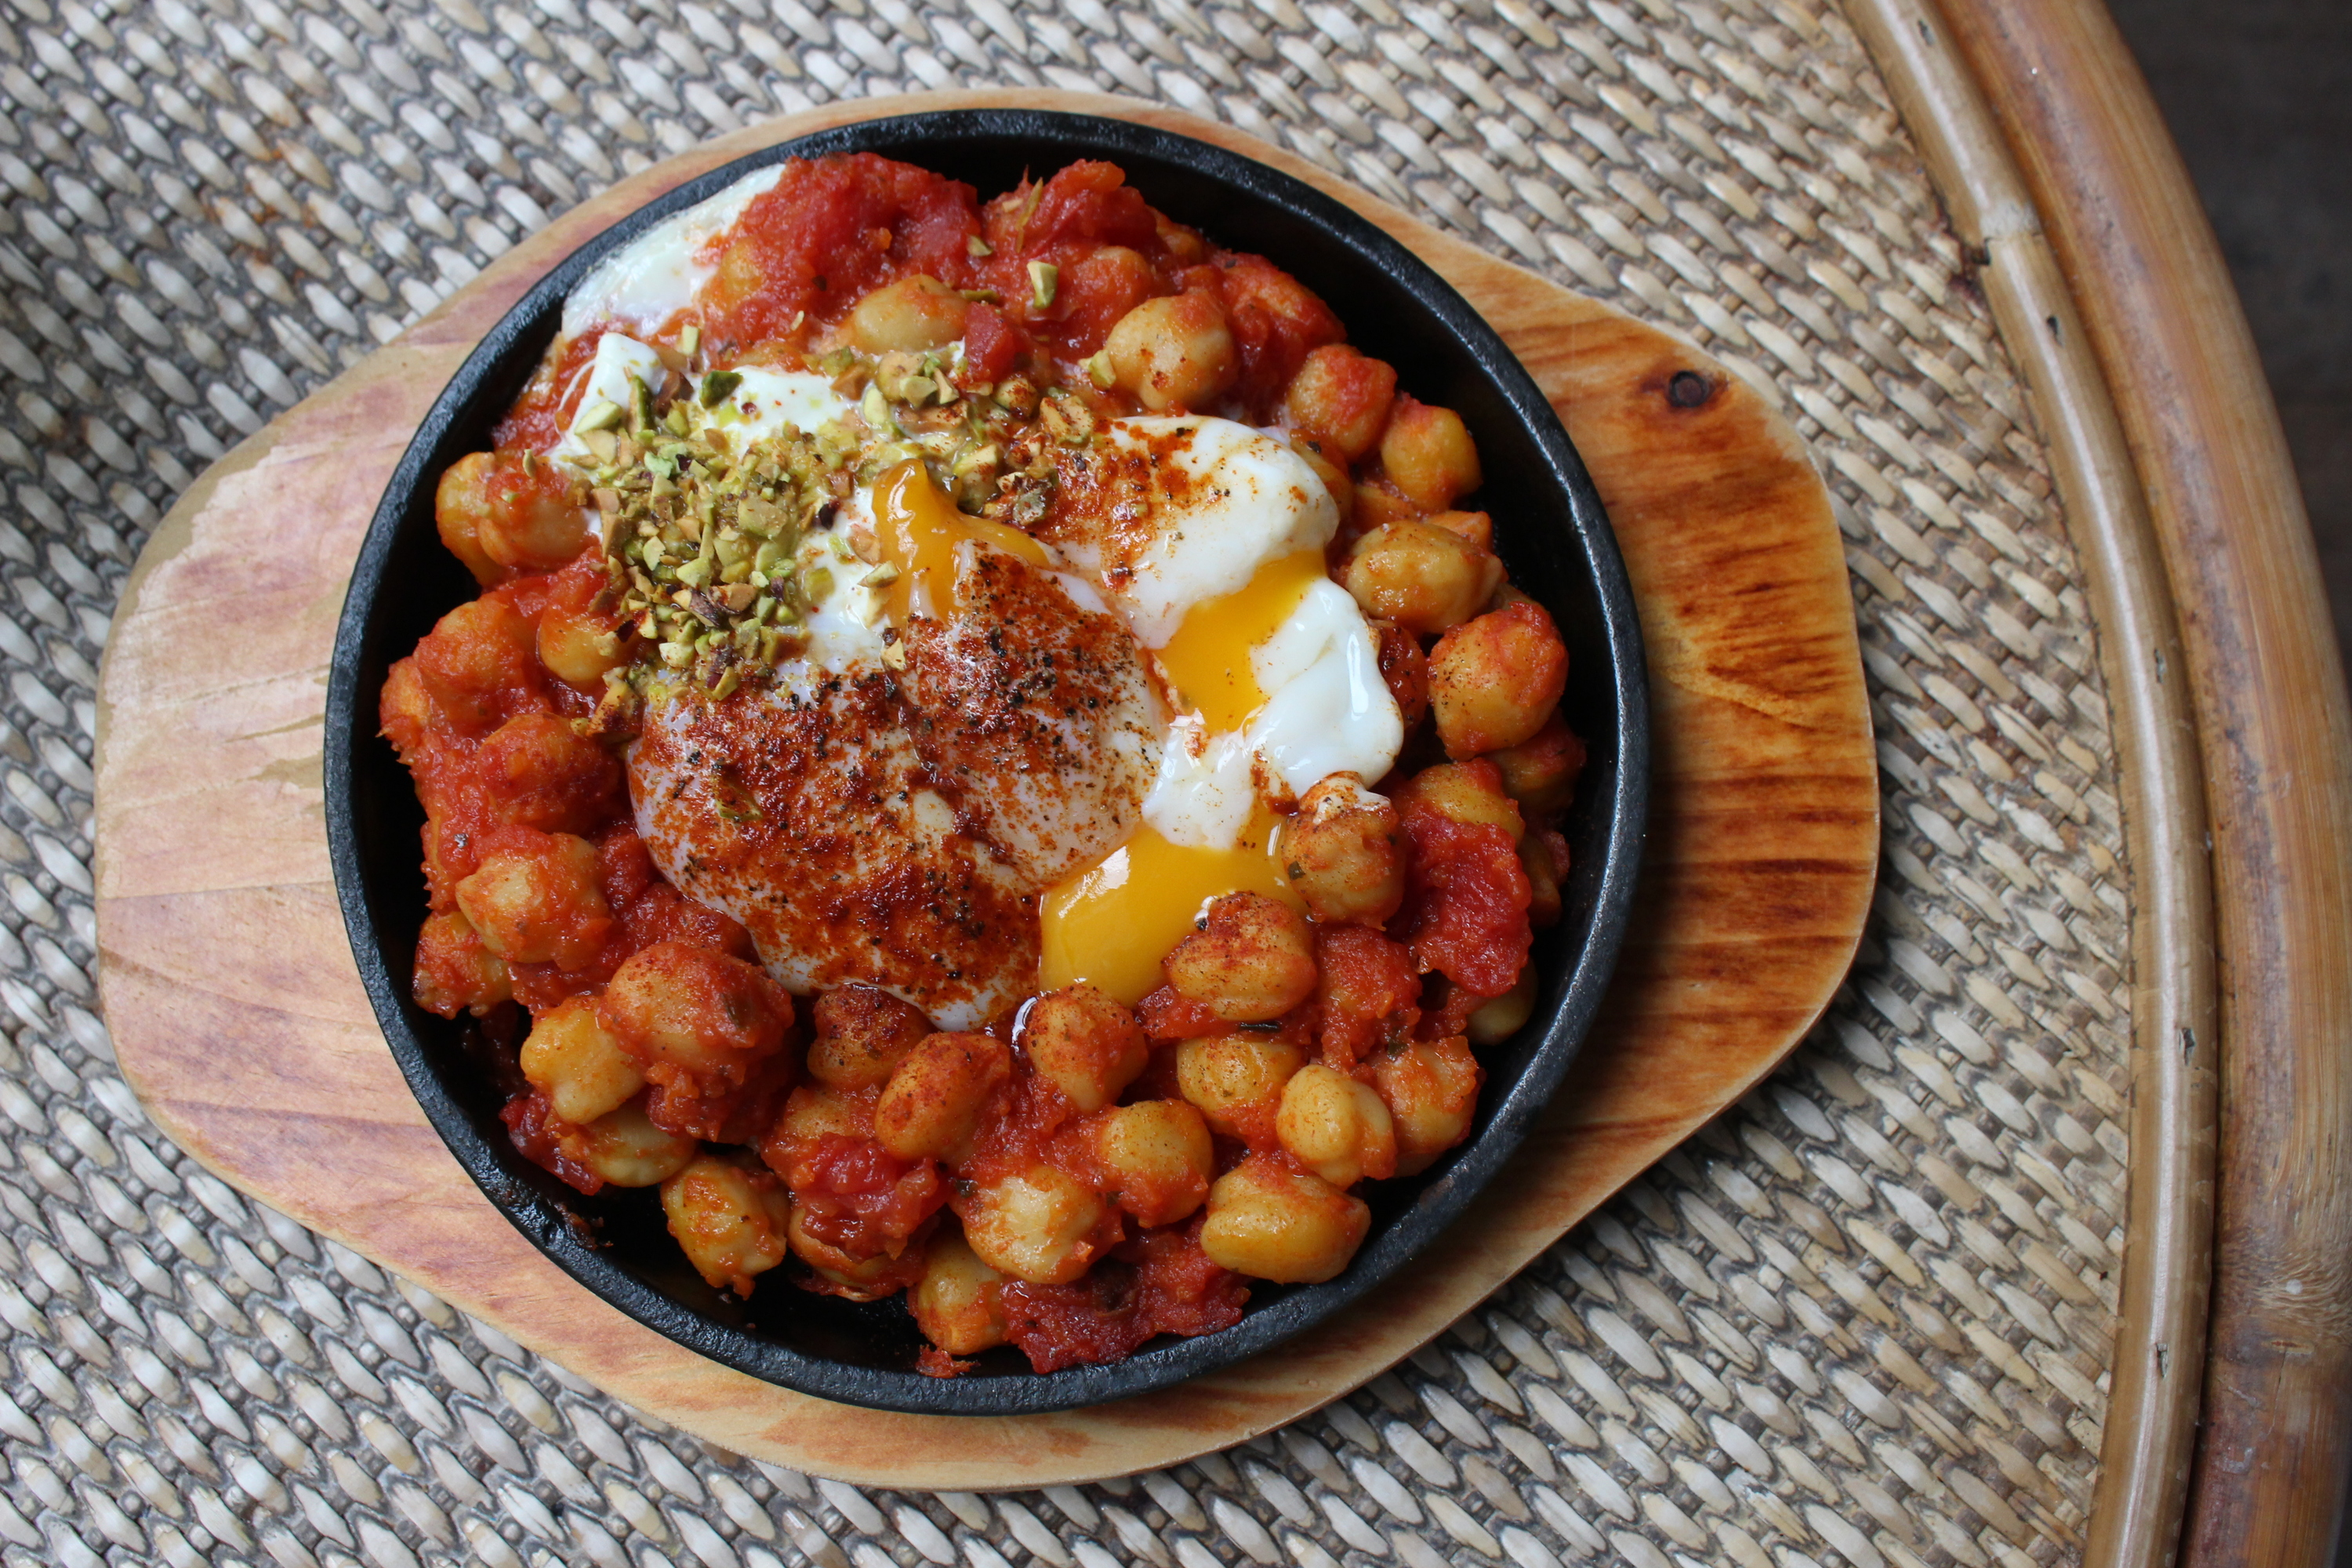 Turkish-style eggs at VCR